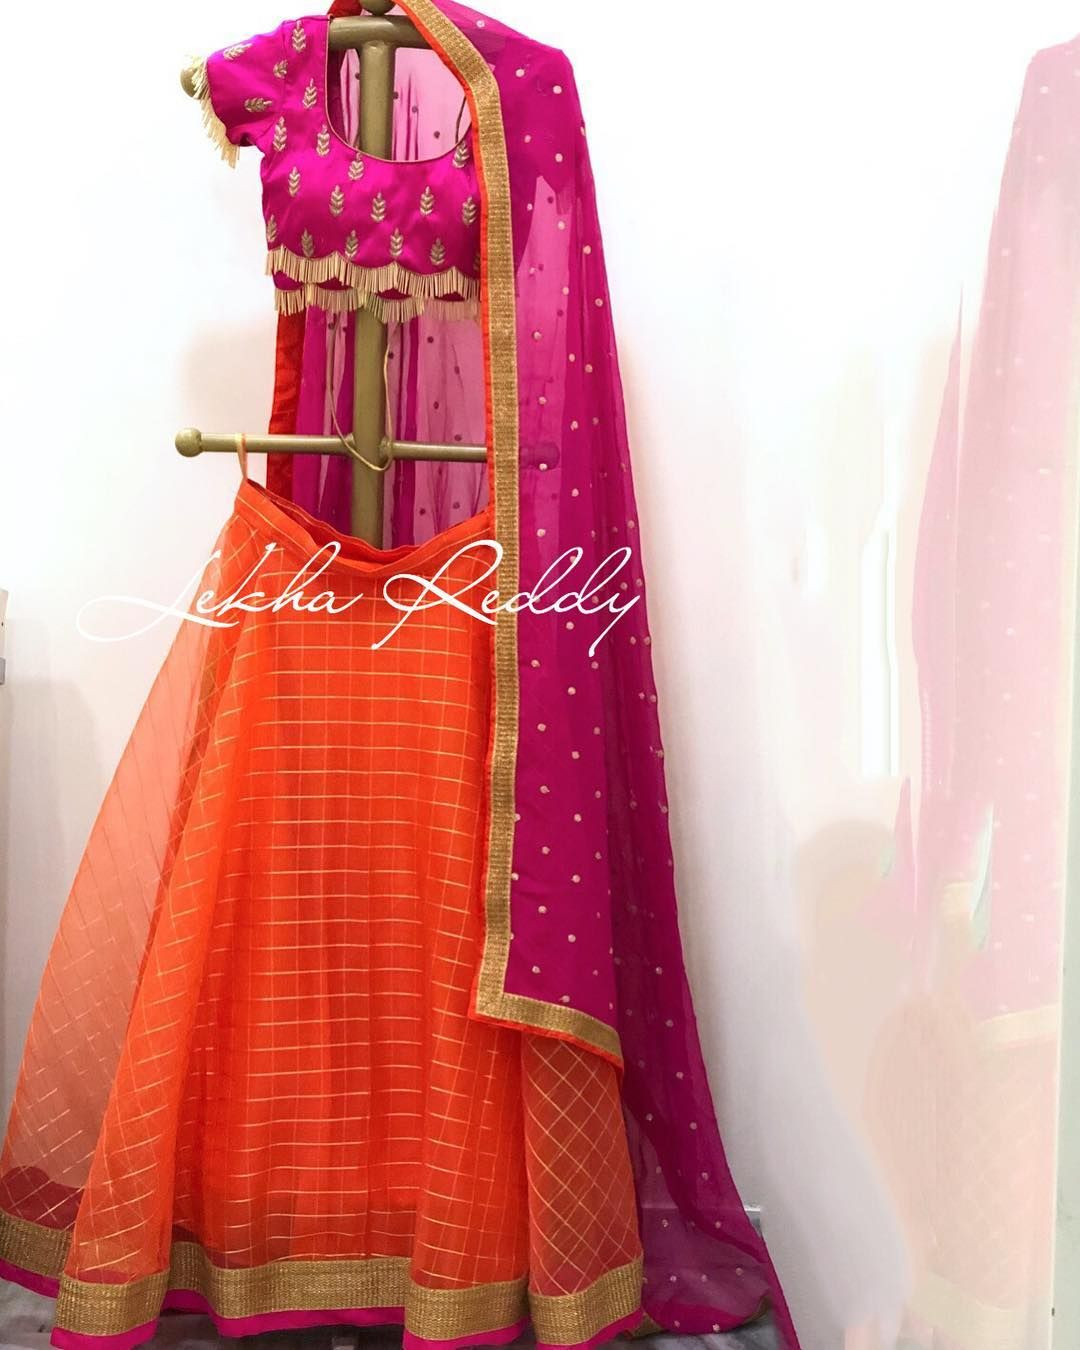 One of Lekha Reddy best seller now in different colour ...